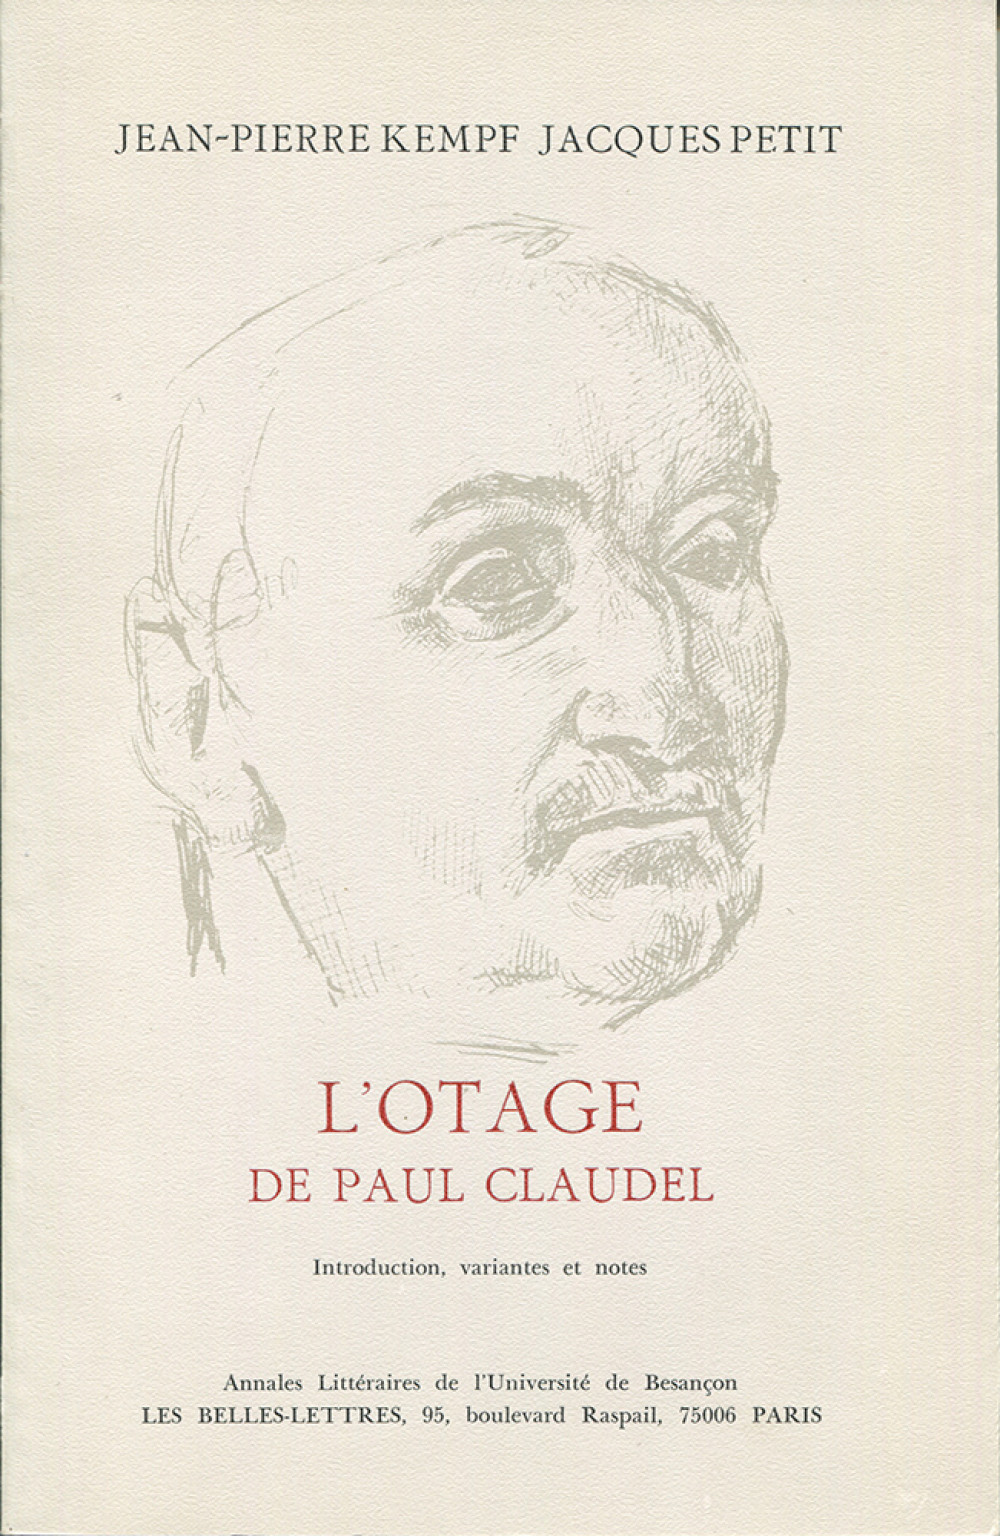 L'otage de Paul Claudel